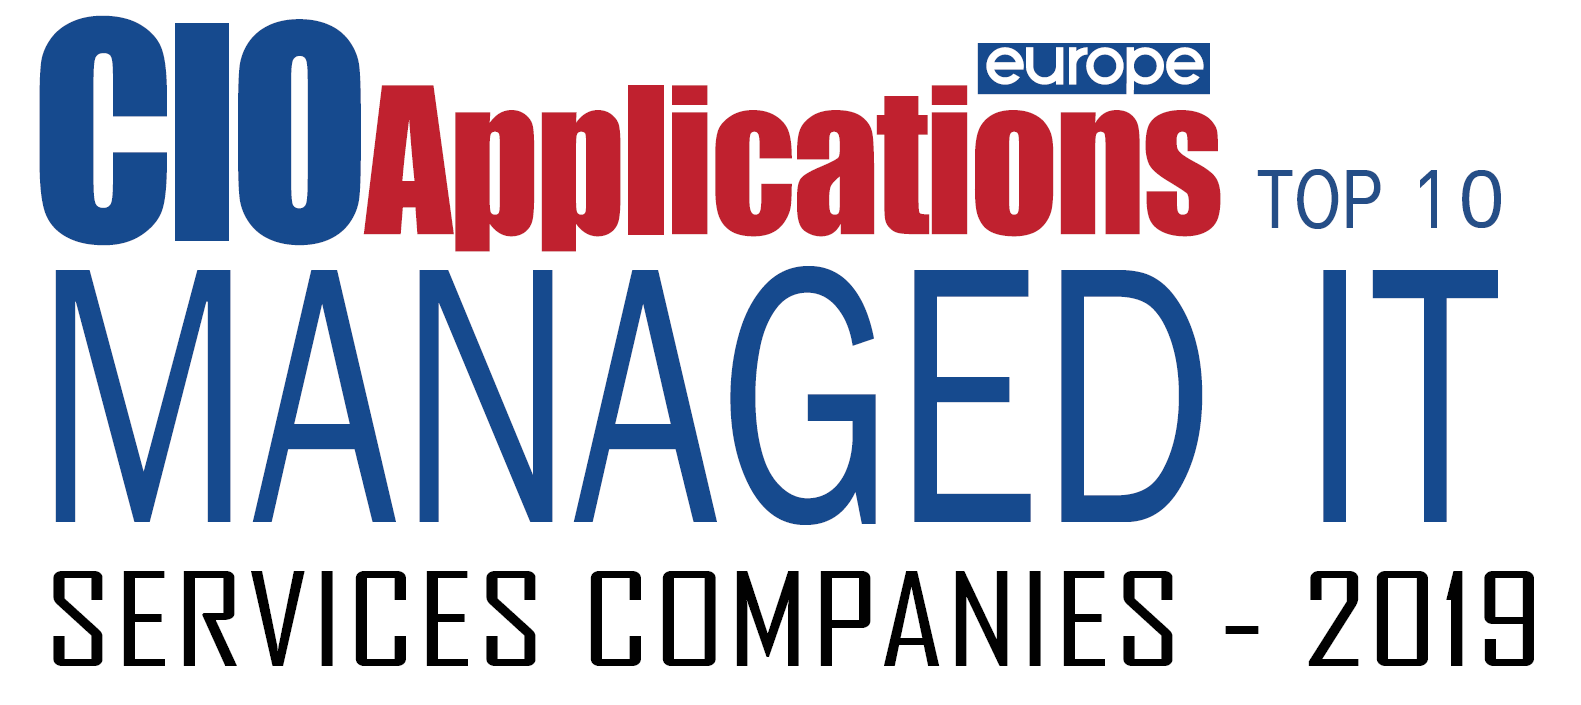 Genmar Awarded Top 10 Managed IT Services Companies - 2019